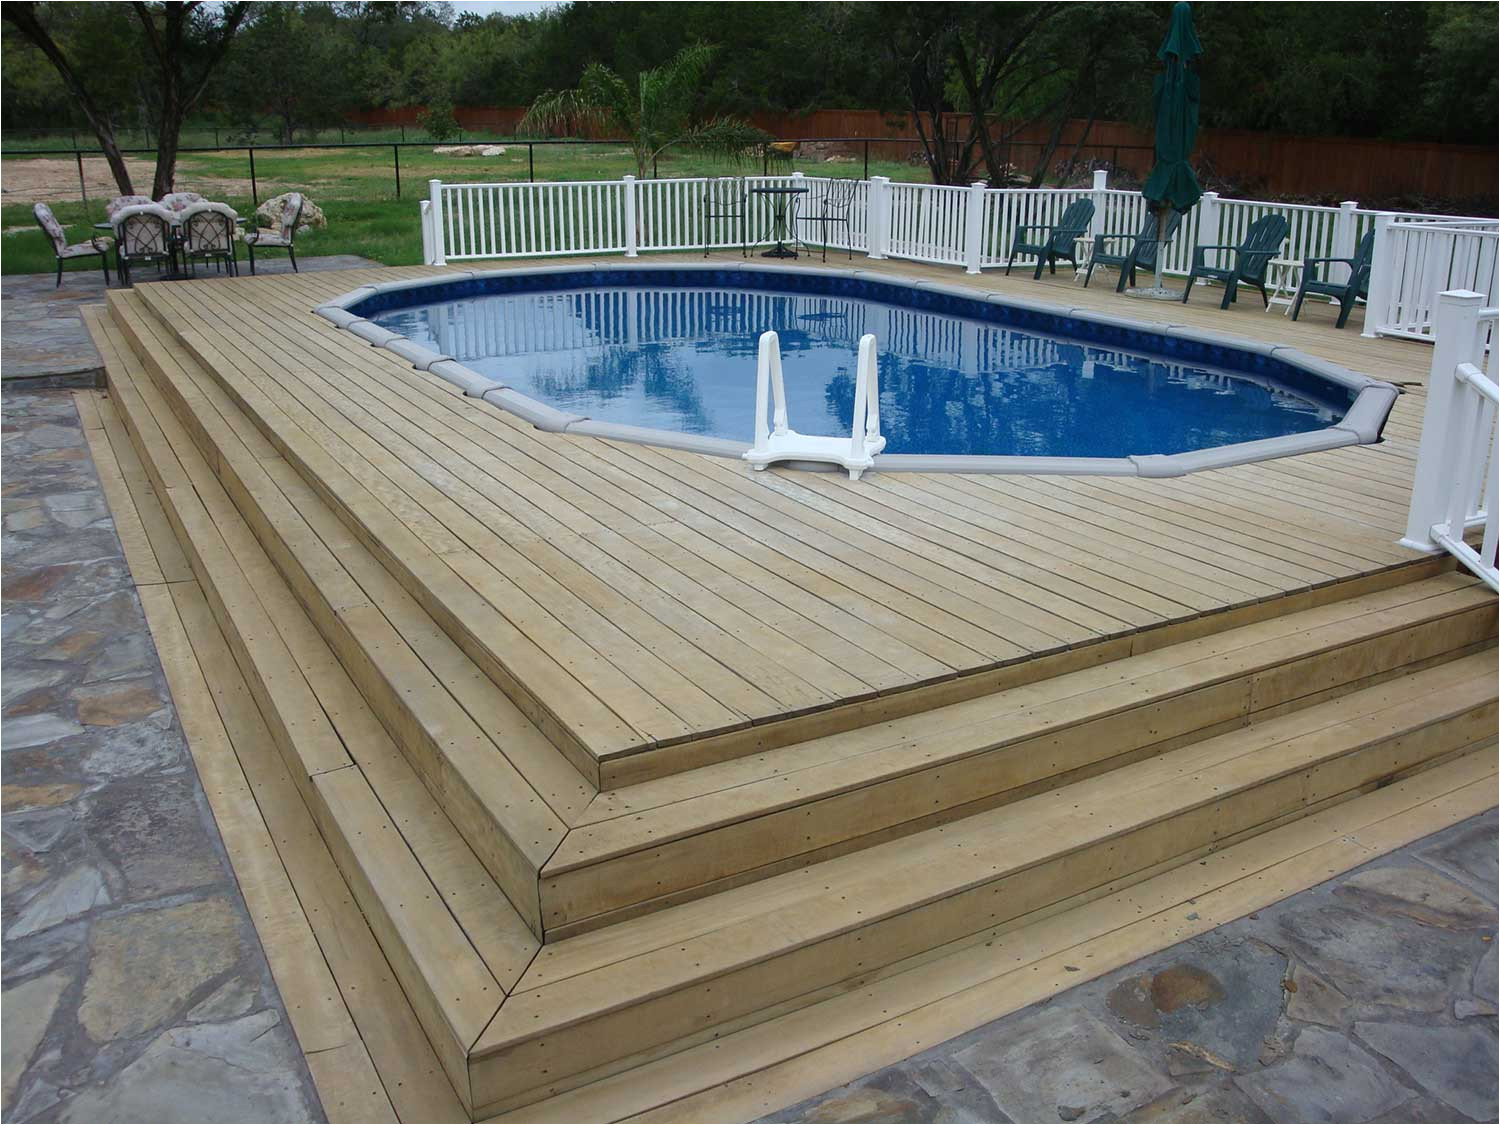 this simple pool has easily become part of the patio walkout with easy accessibility and welcoming cool waters